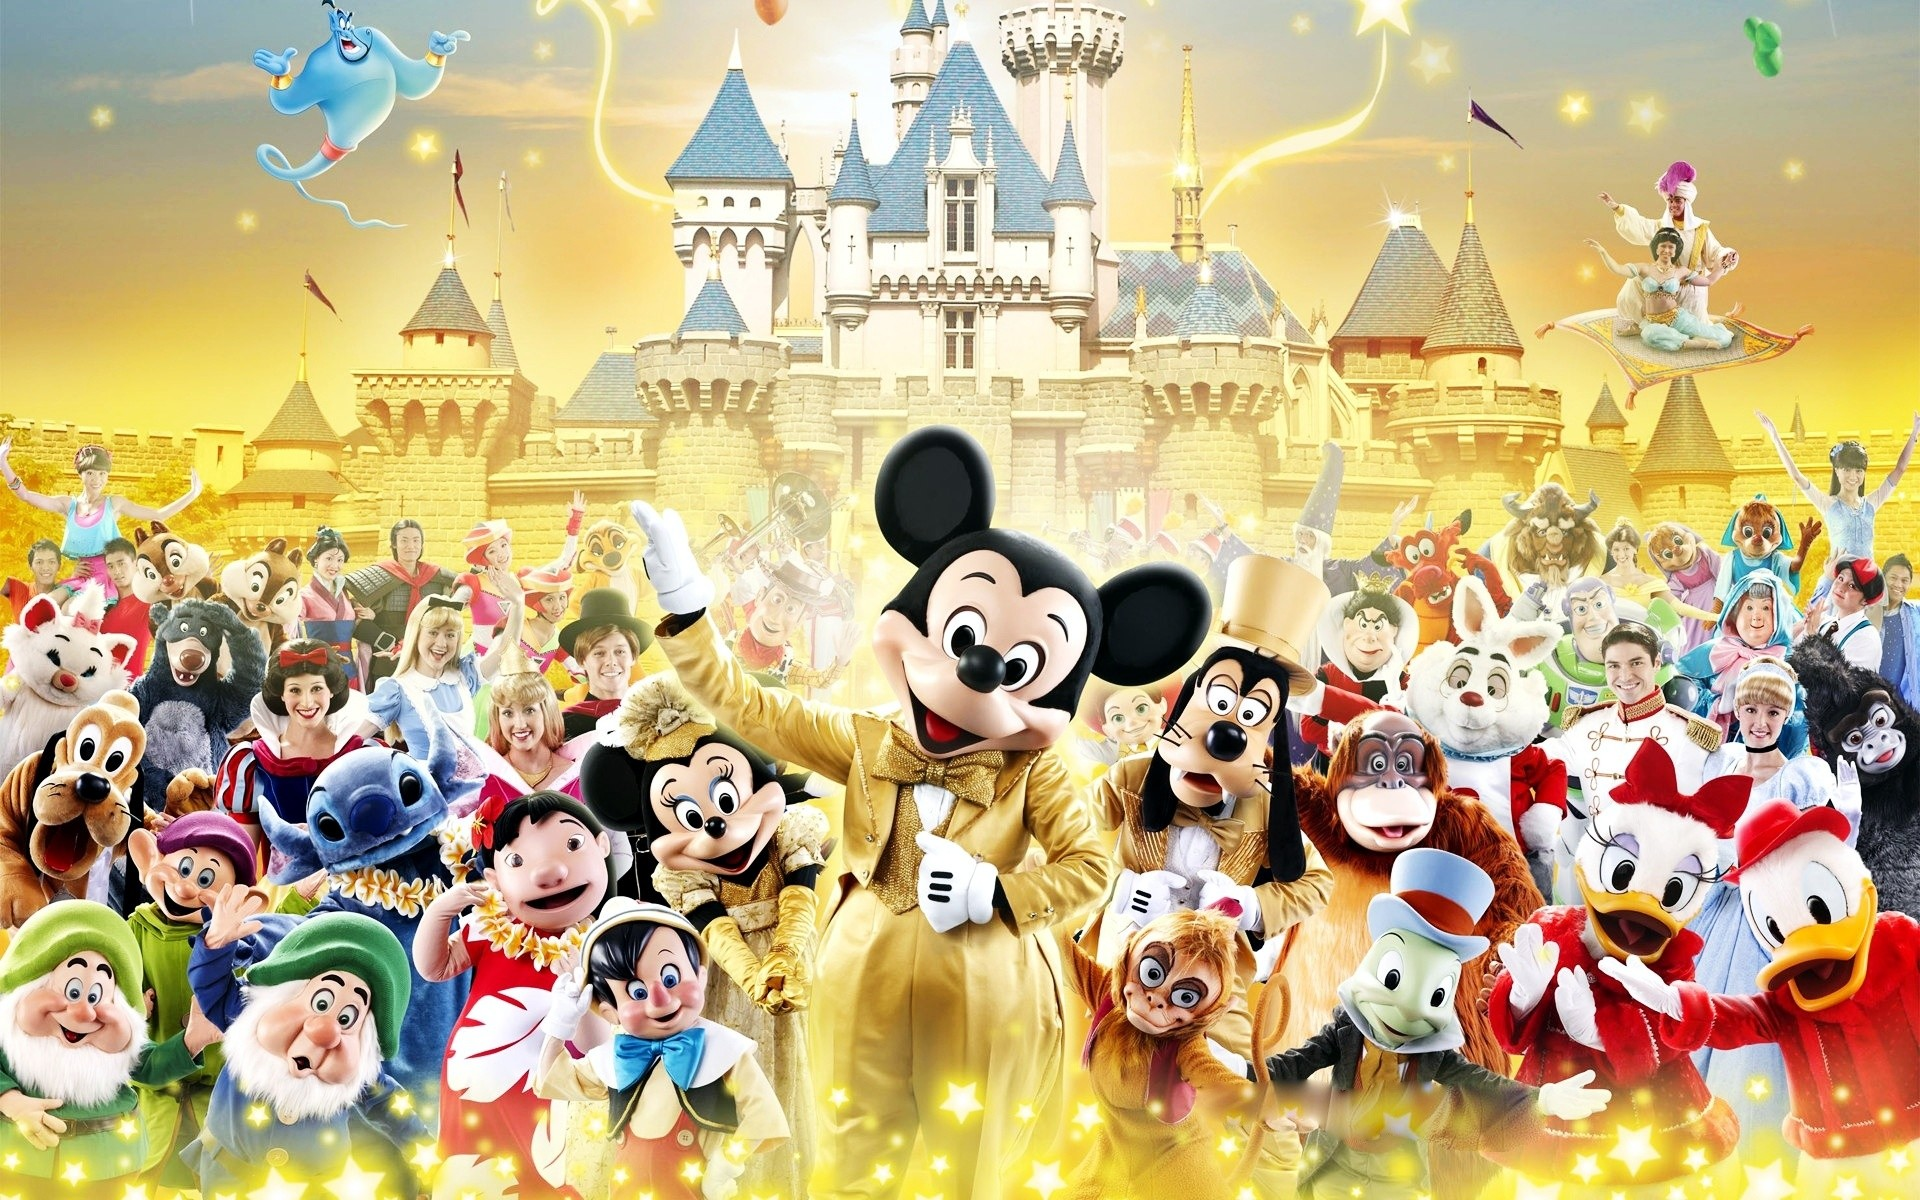 1920x1200 hd disney world picture hd desktop wallpapers cool background photos smart  phone background photos desktop backgrounds artworks dual monitors 4k  1920×1200 ...